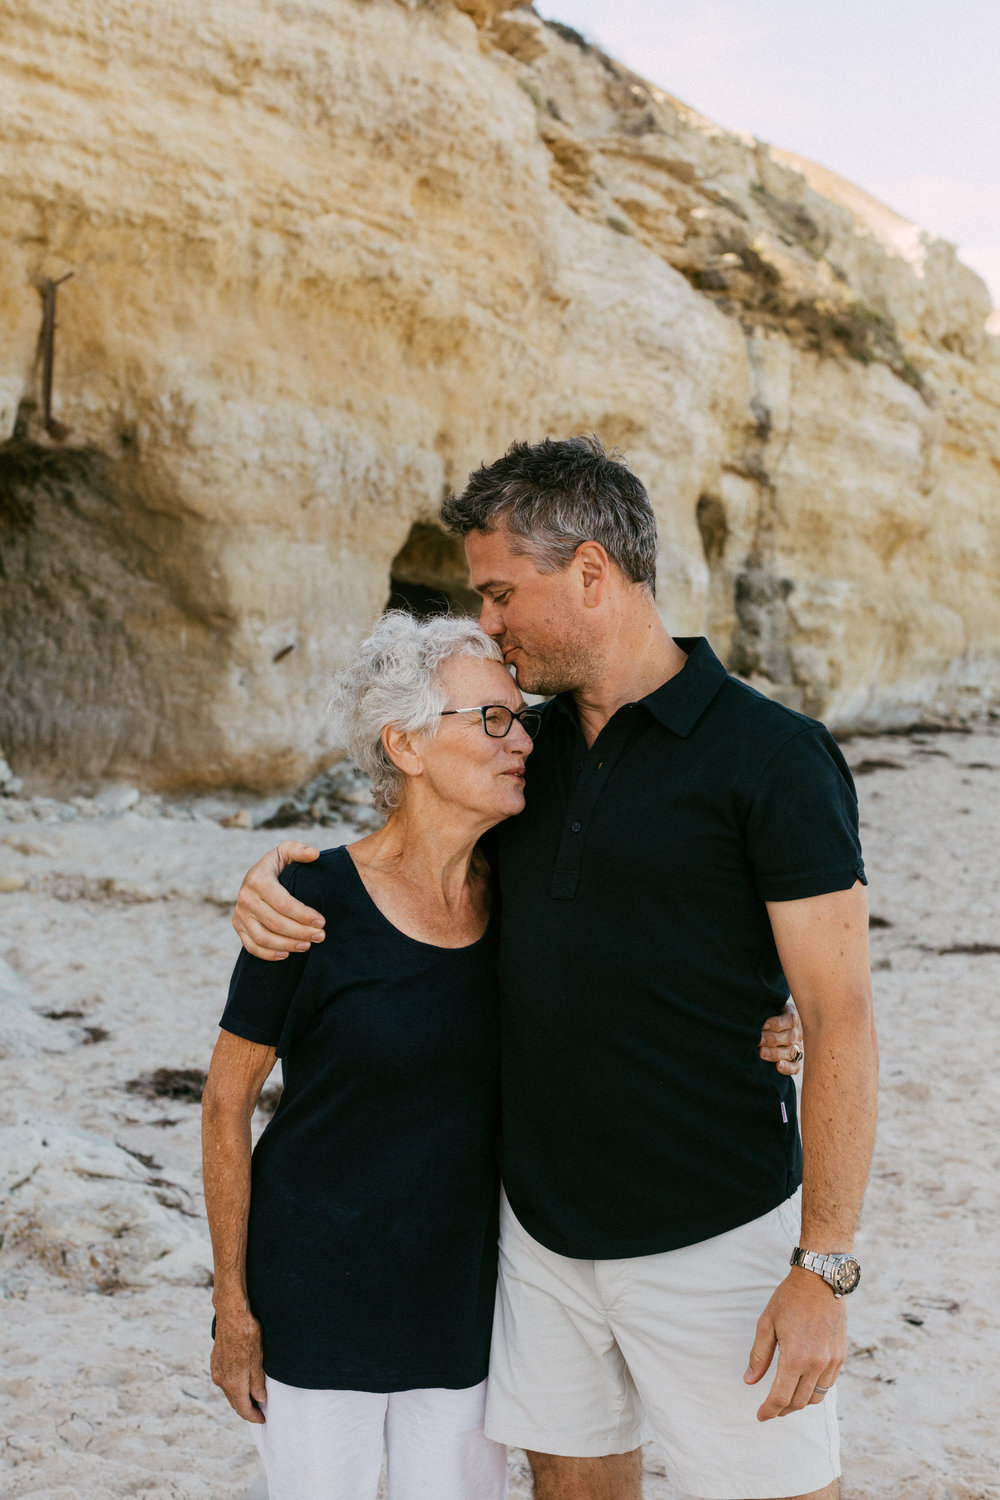 Natural Portraits for Large Family on Beach South Australia 022.JPG